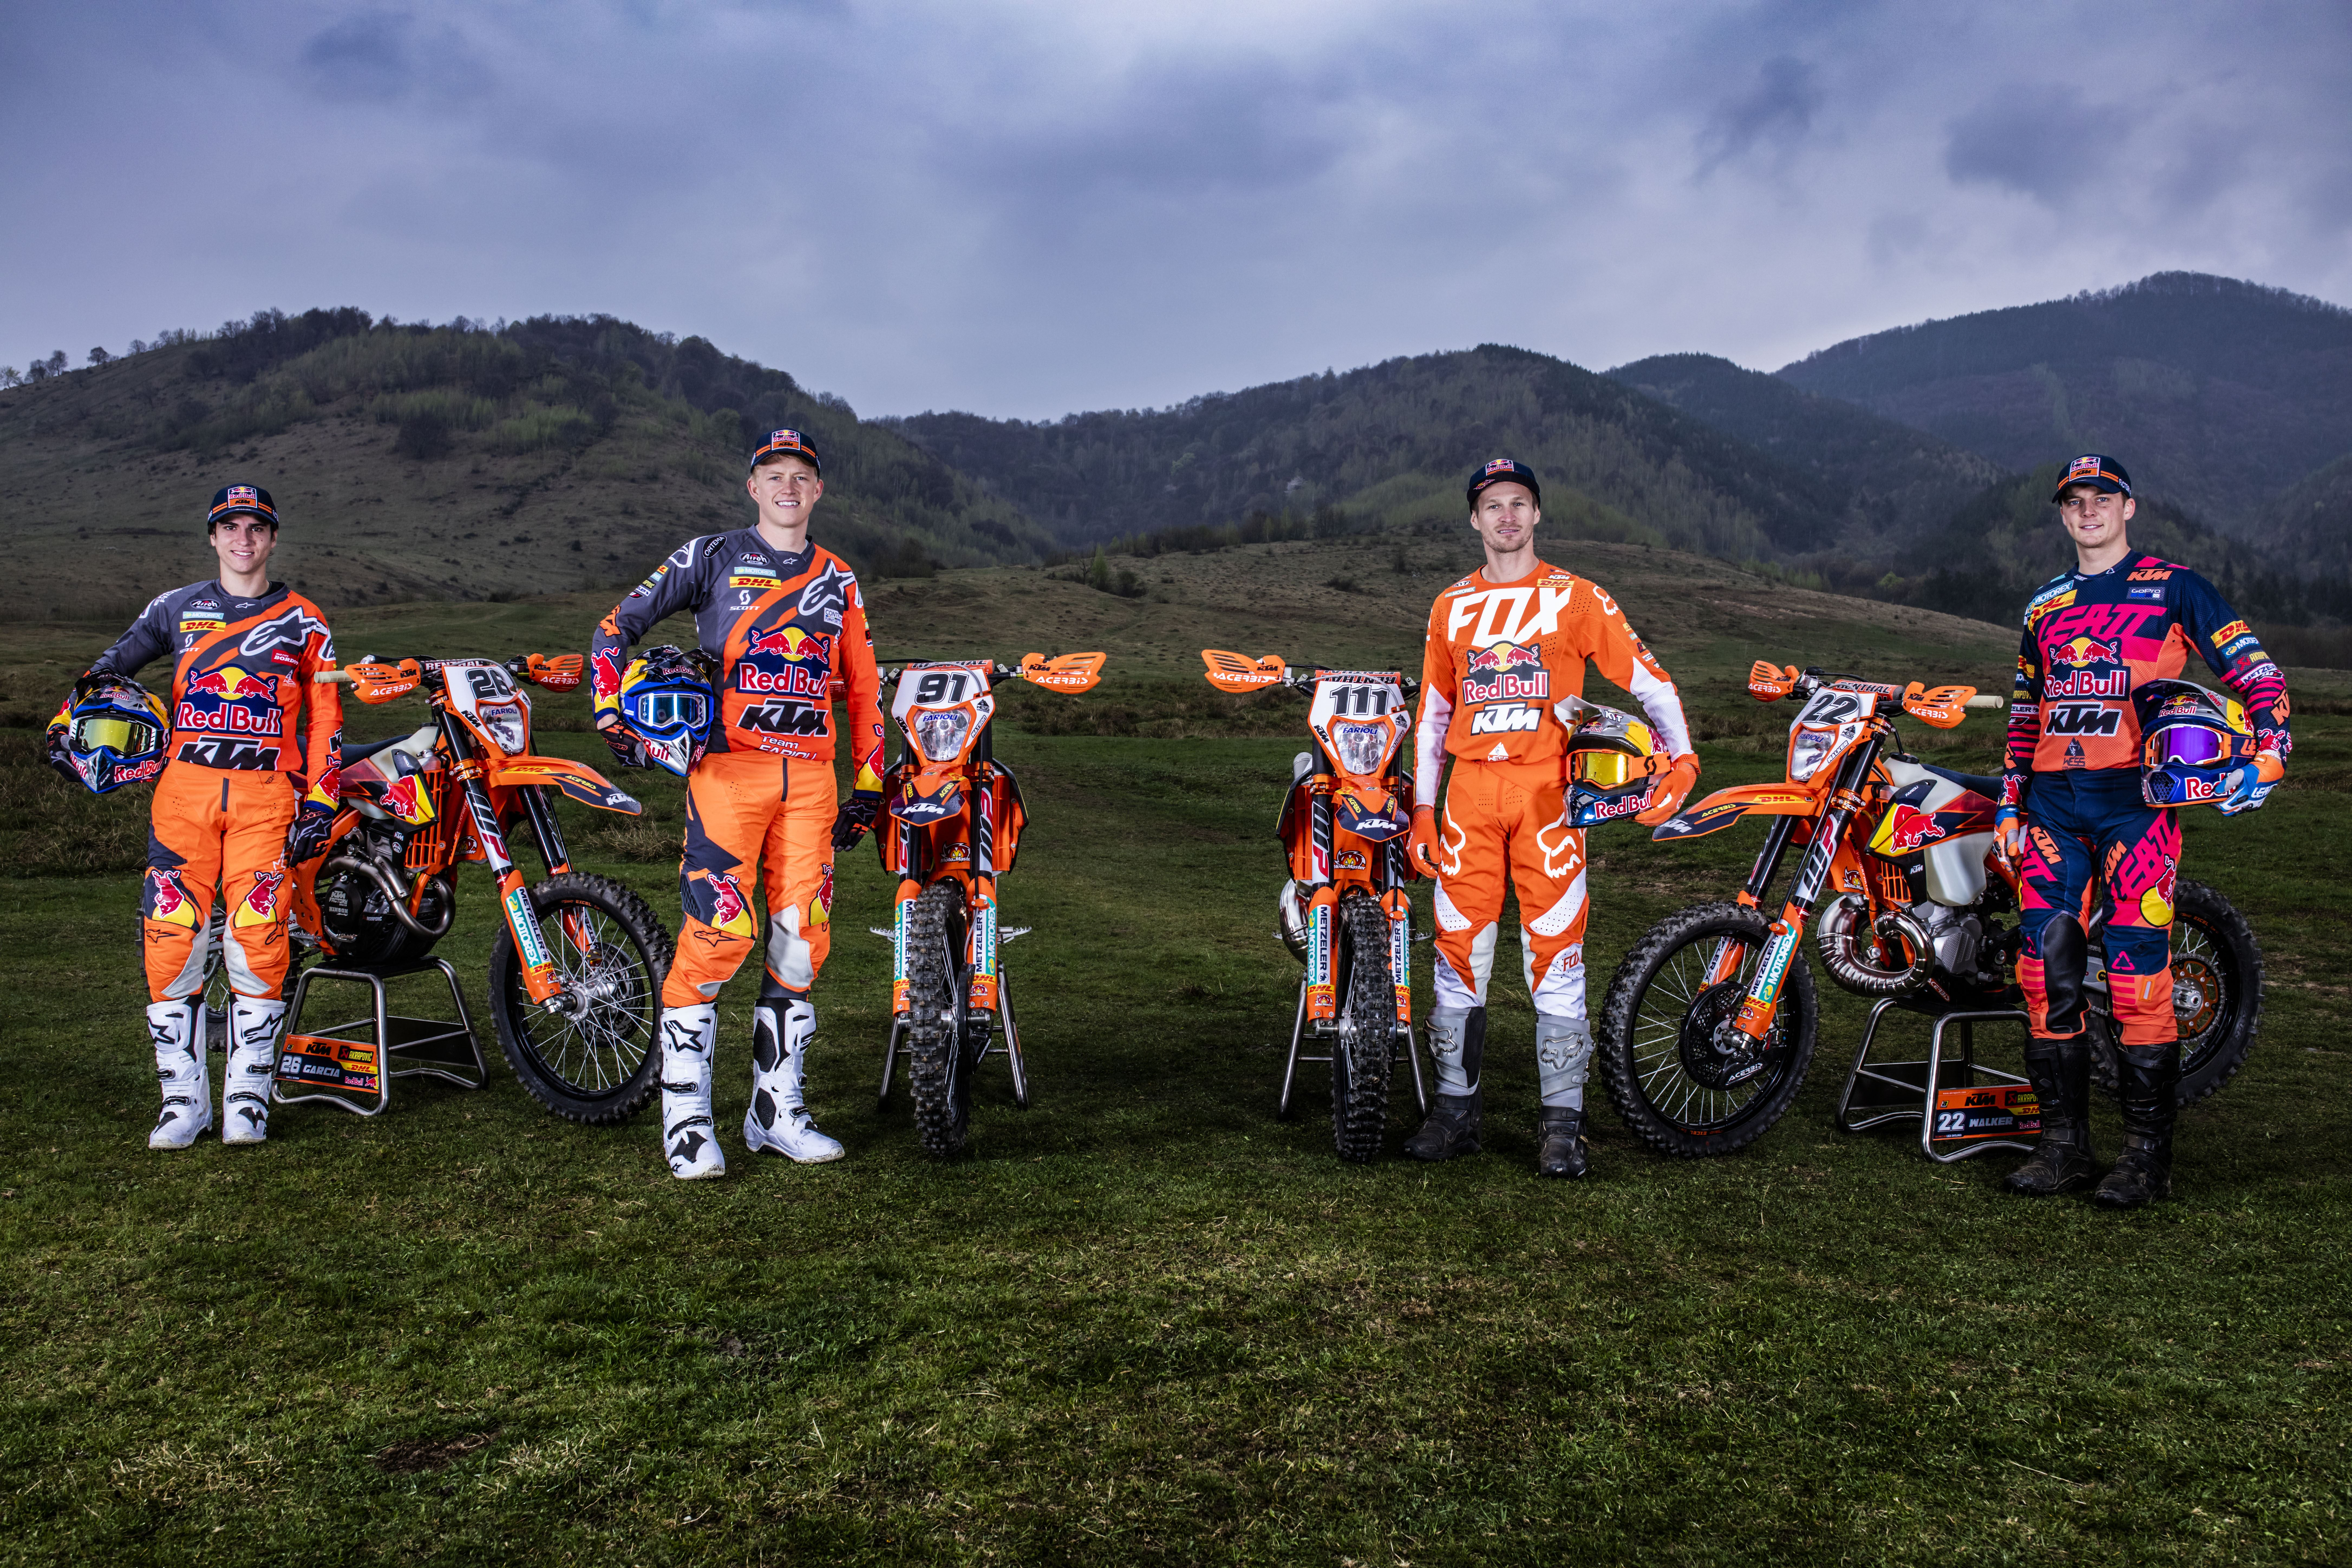 Red Bull KTM sets sights on triumphant run in 2019 WESS